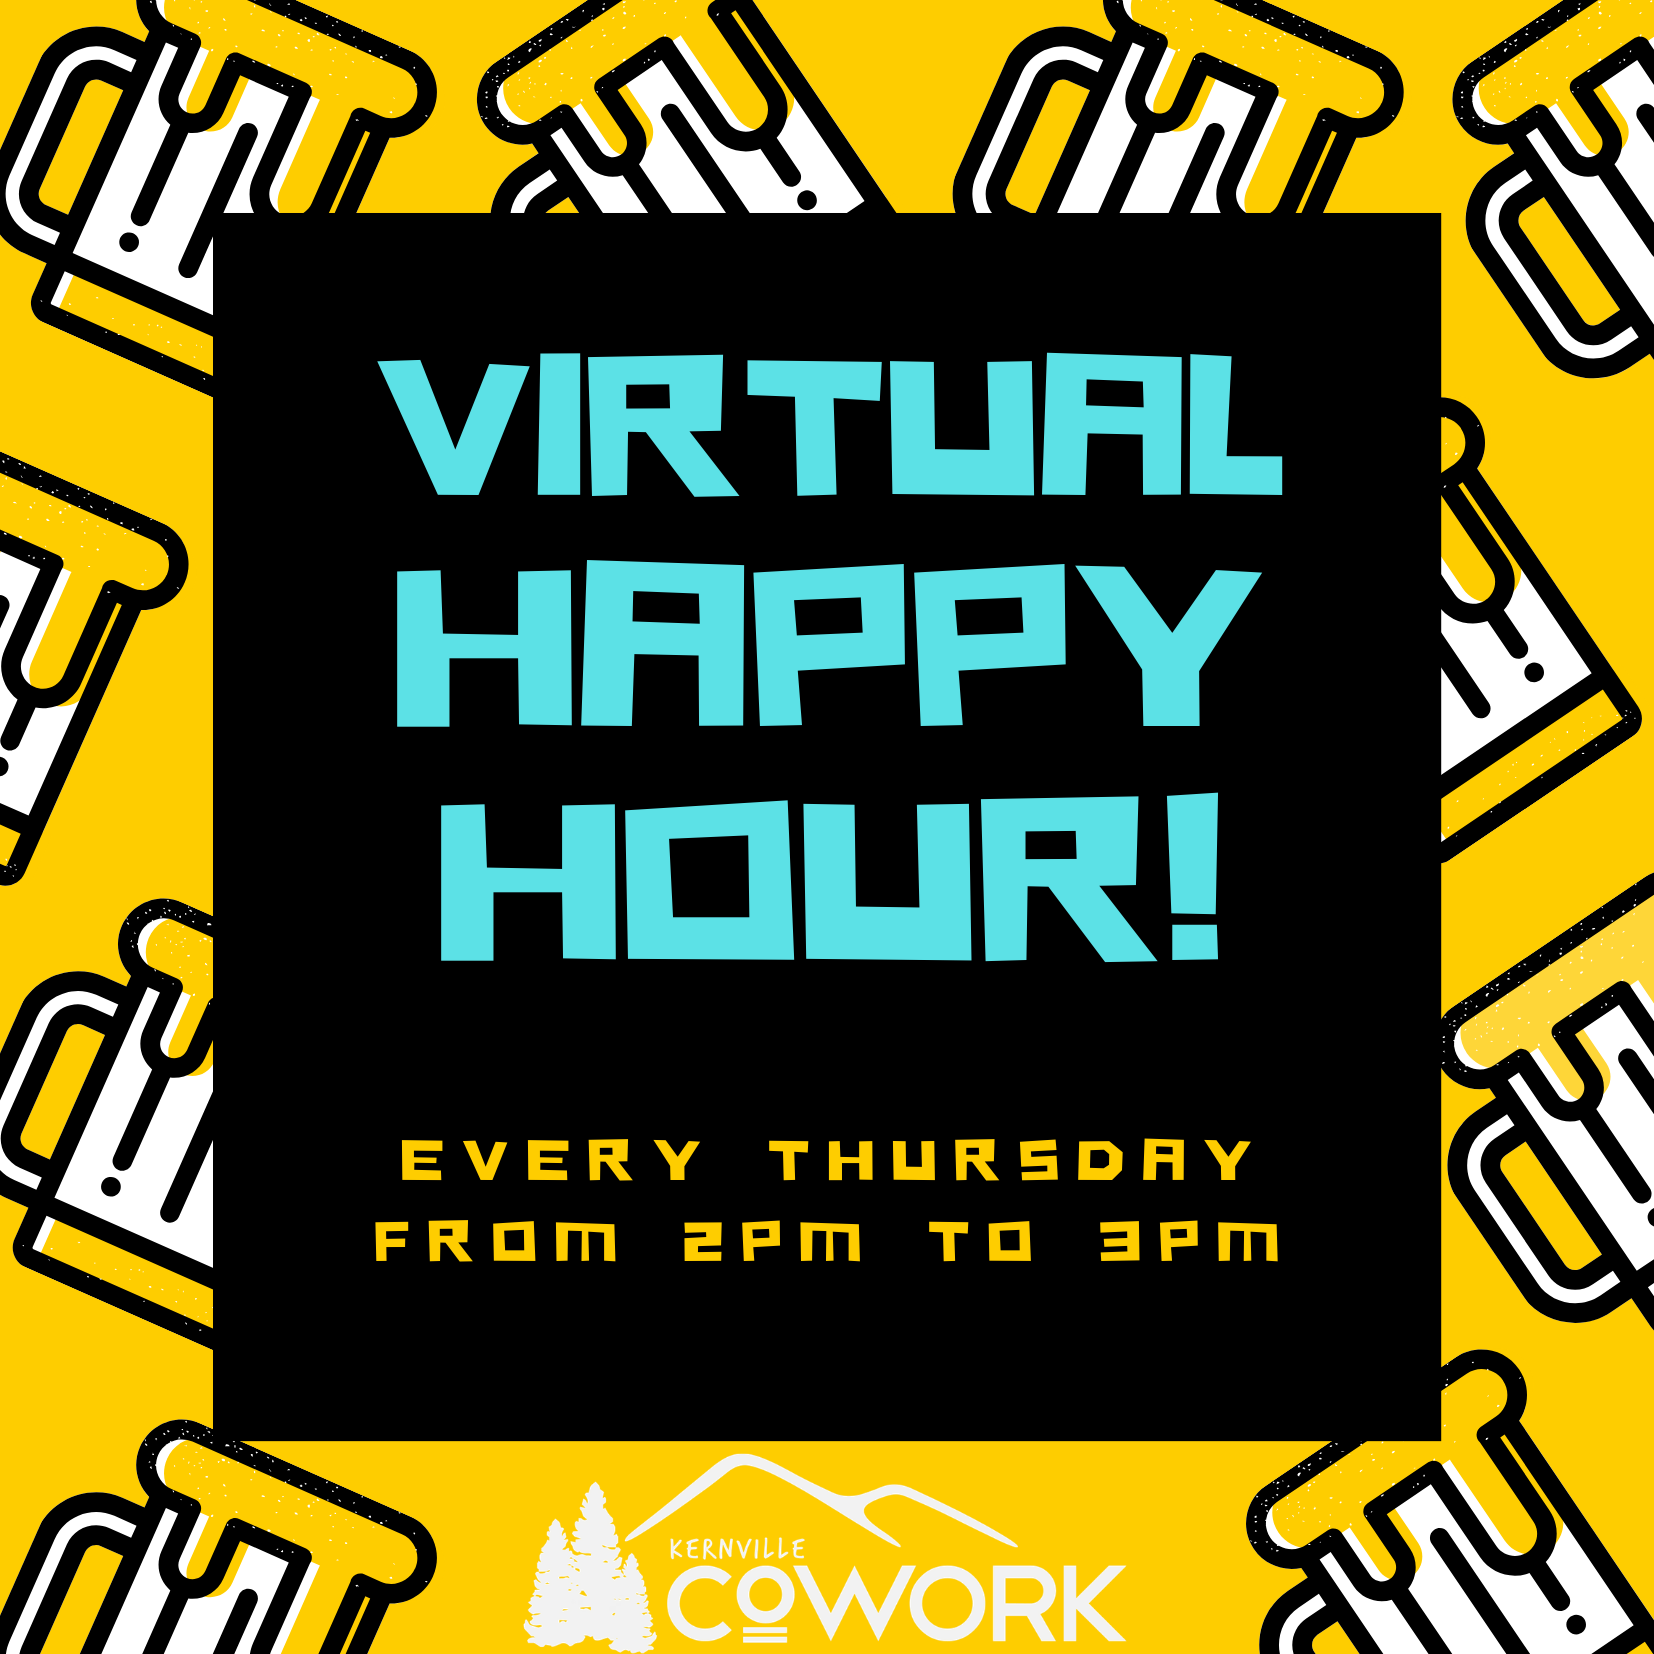 Kernville Cowork Virtual Happy Hour!